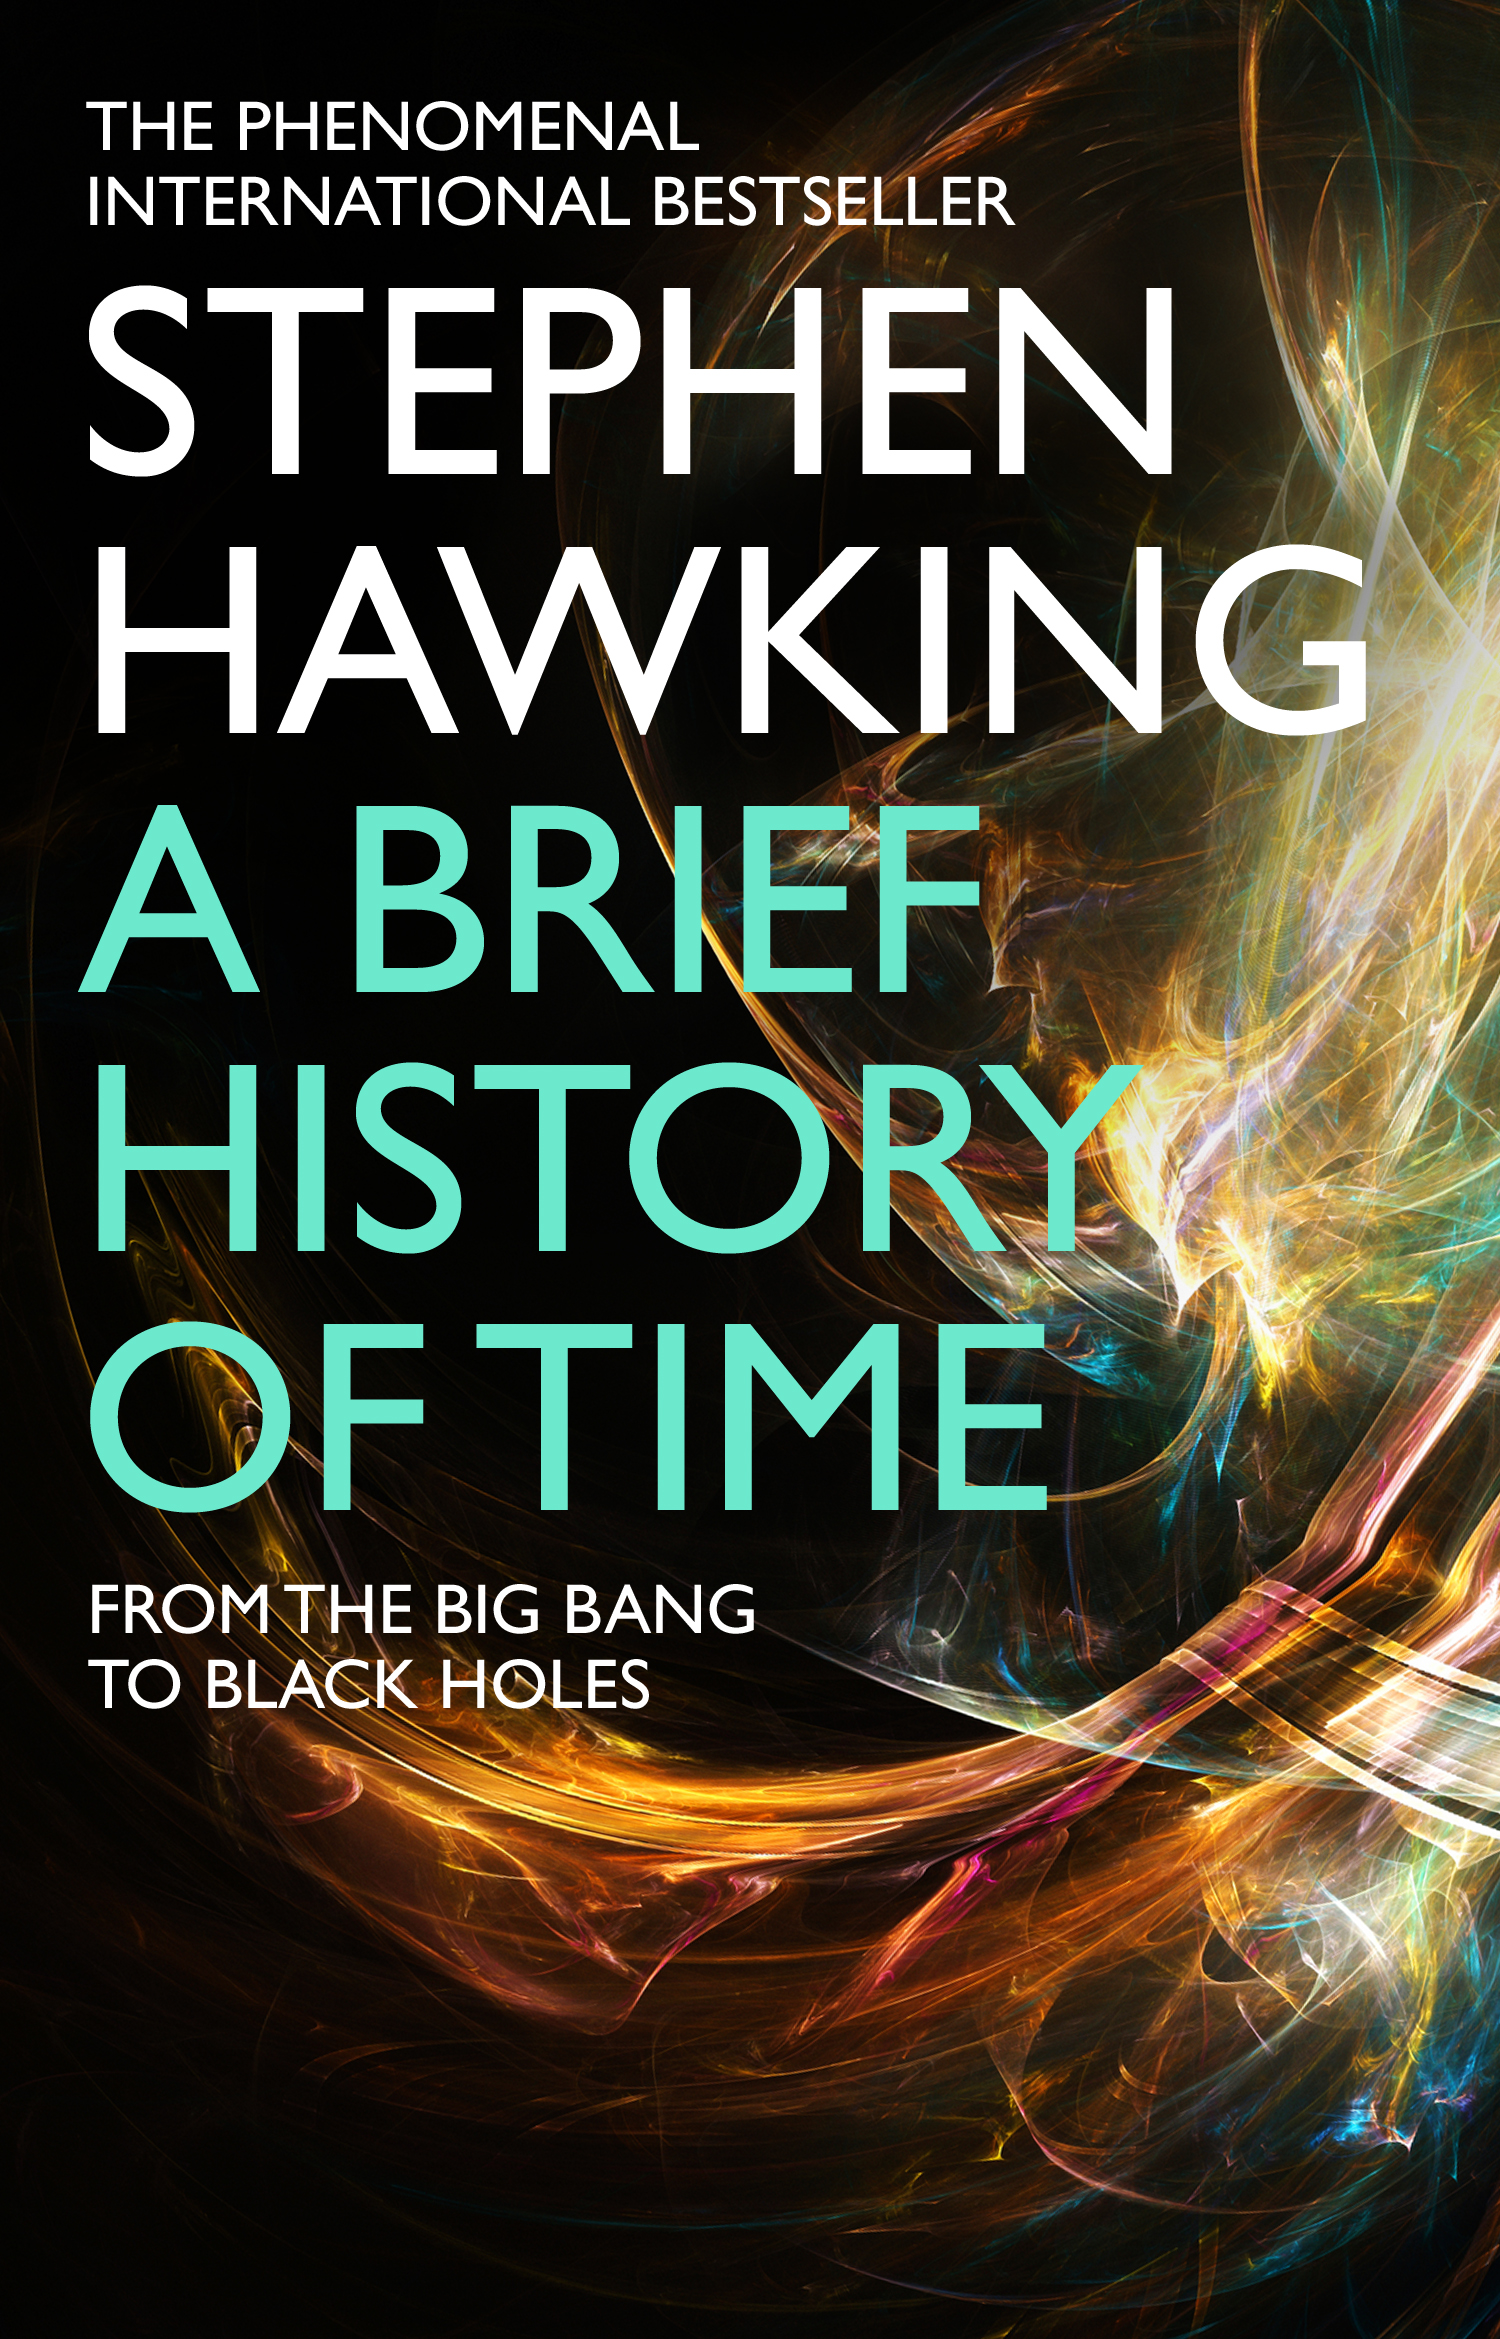 A Brief History Of Time: From Big Bang To Black Holes by Stephen Hawking, ISBN: 9780857501004